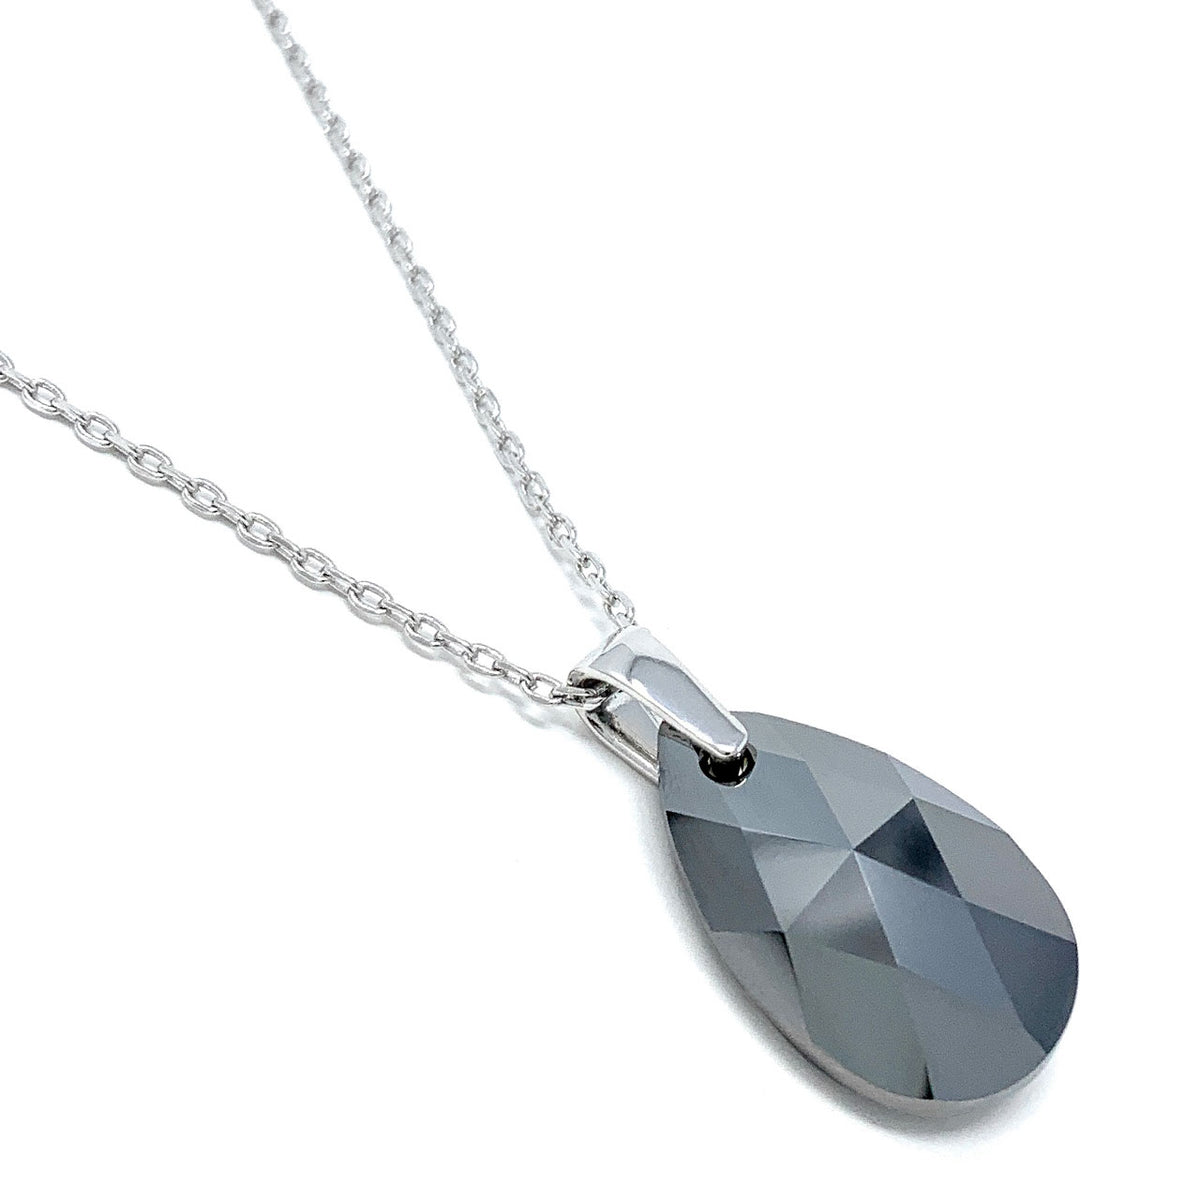 Aurora Pendant Necklace with Black Grey Silver Night Pear Crystals from Swarovski Silver Toned Rhodium Plated - Ed Heart